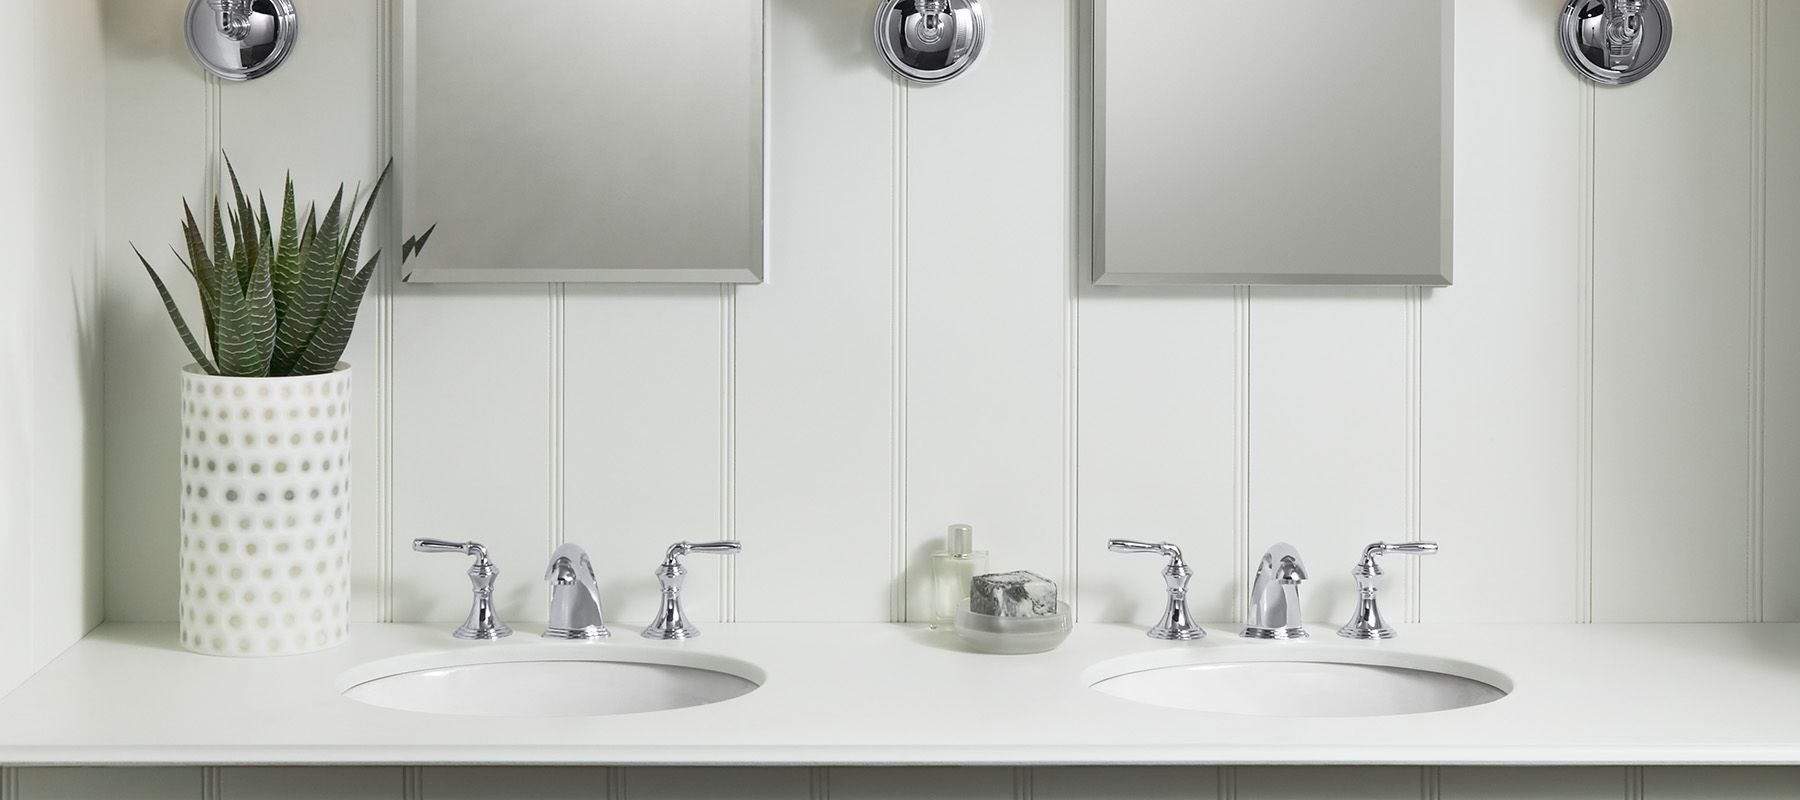 Bathroom Sink Png Hd Transparent Bathroom Sink Hd Png